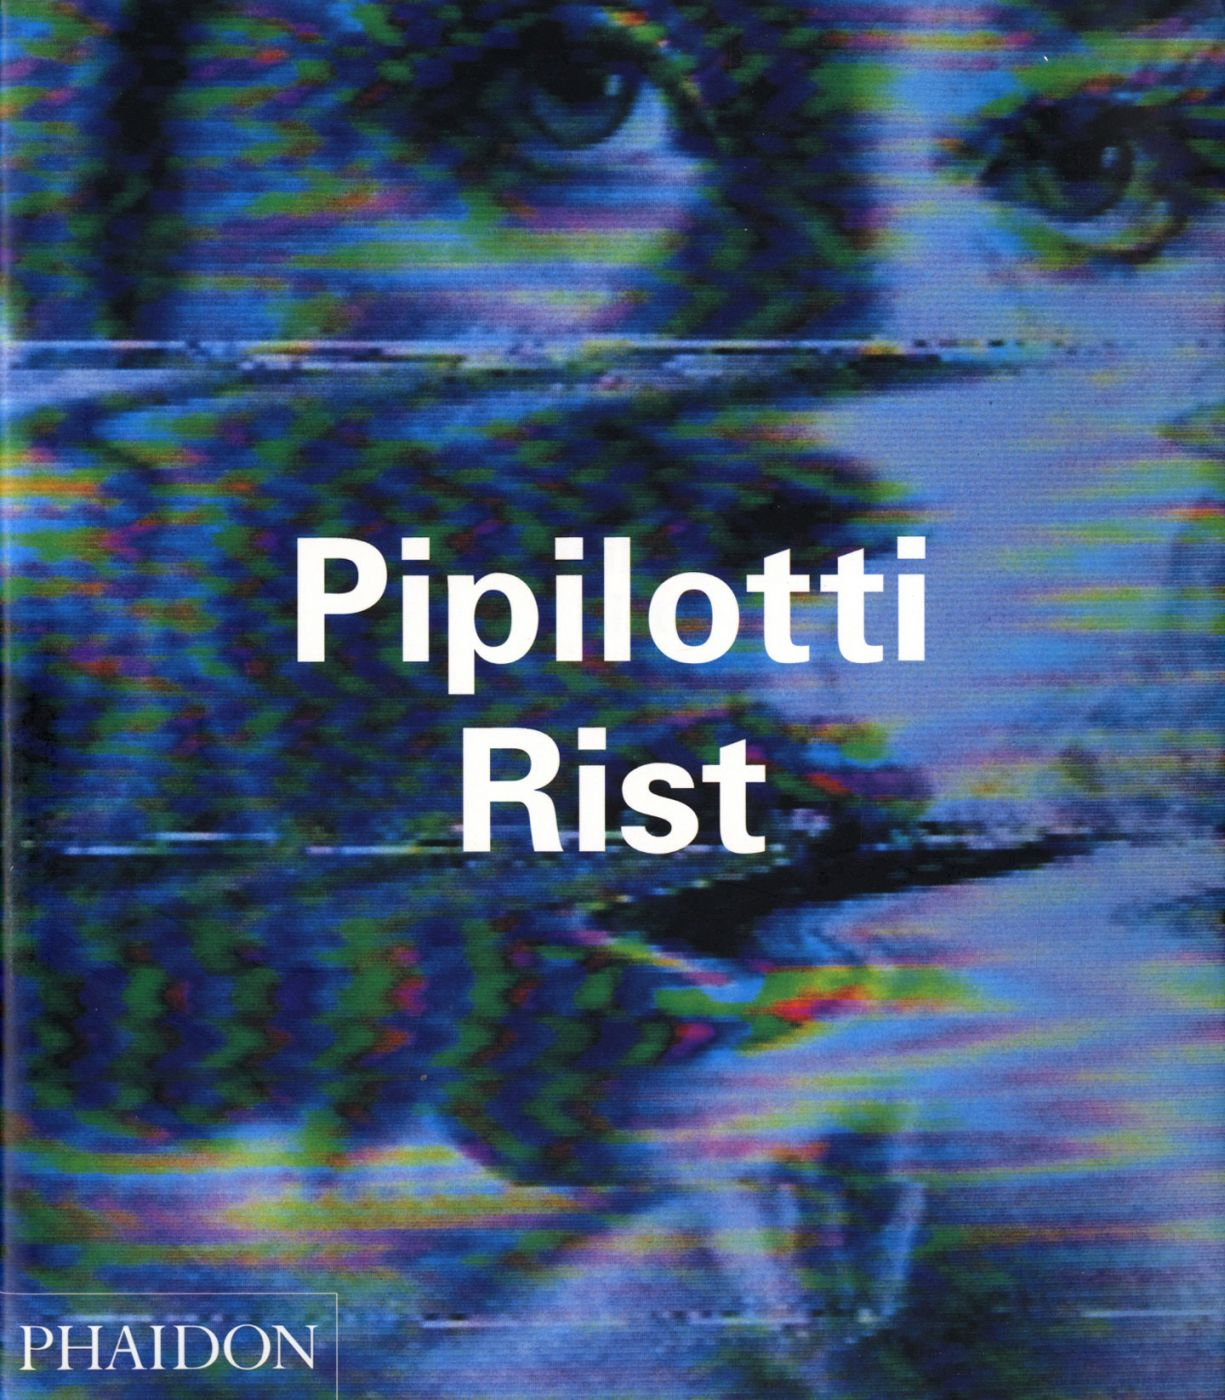 Pipilotti Rist (Phaidon Contemporary Artists)